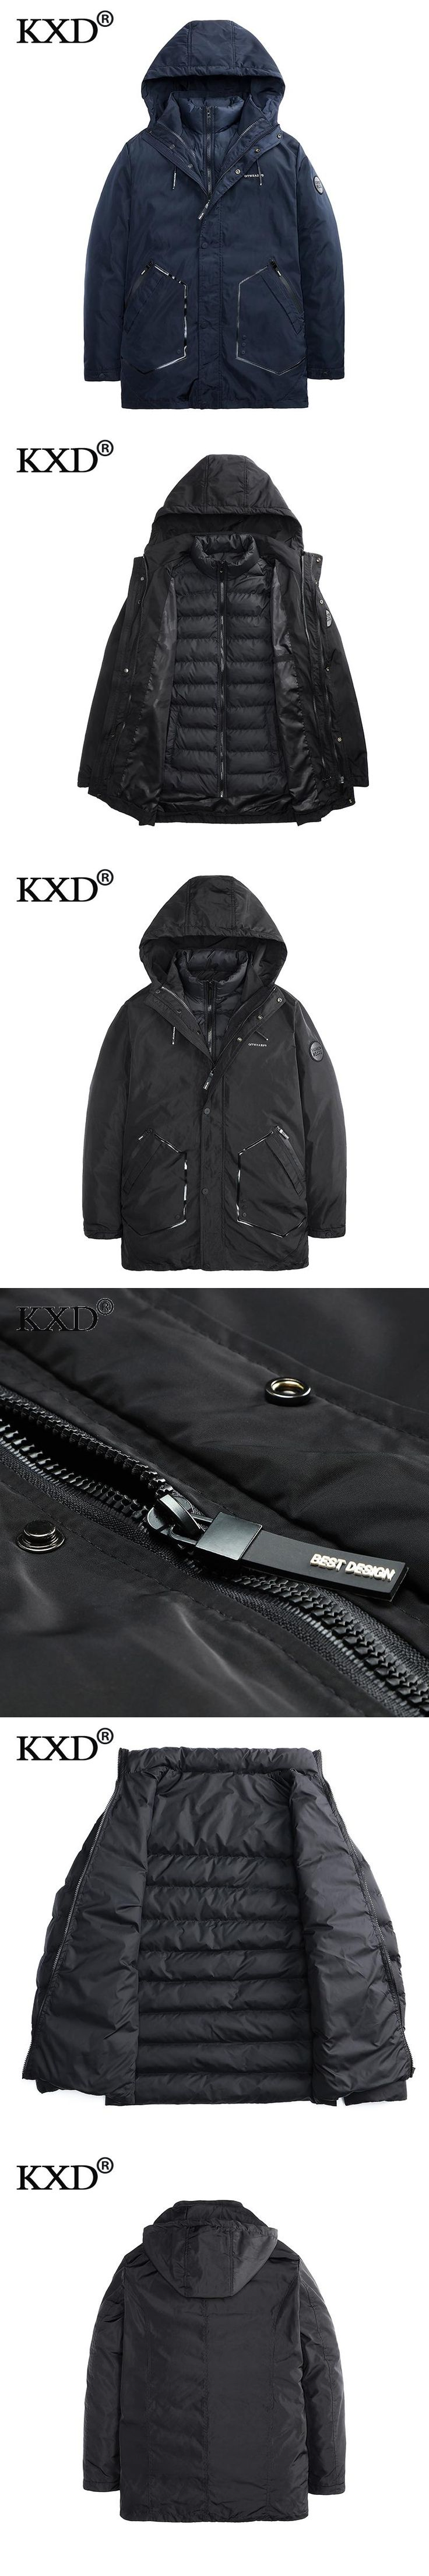 KXD 2017 New Clothing Jackets Business Long Thick Winter Coat Men Solid Parka Fashion Overcoat Outerwear Parkas Hombre Invierno